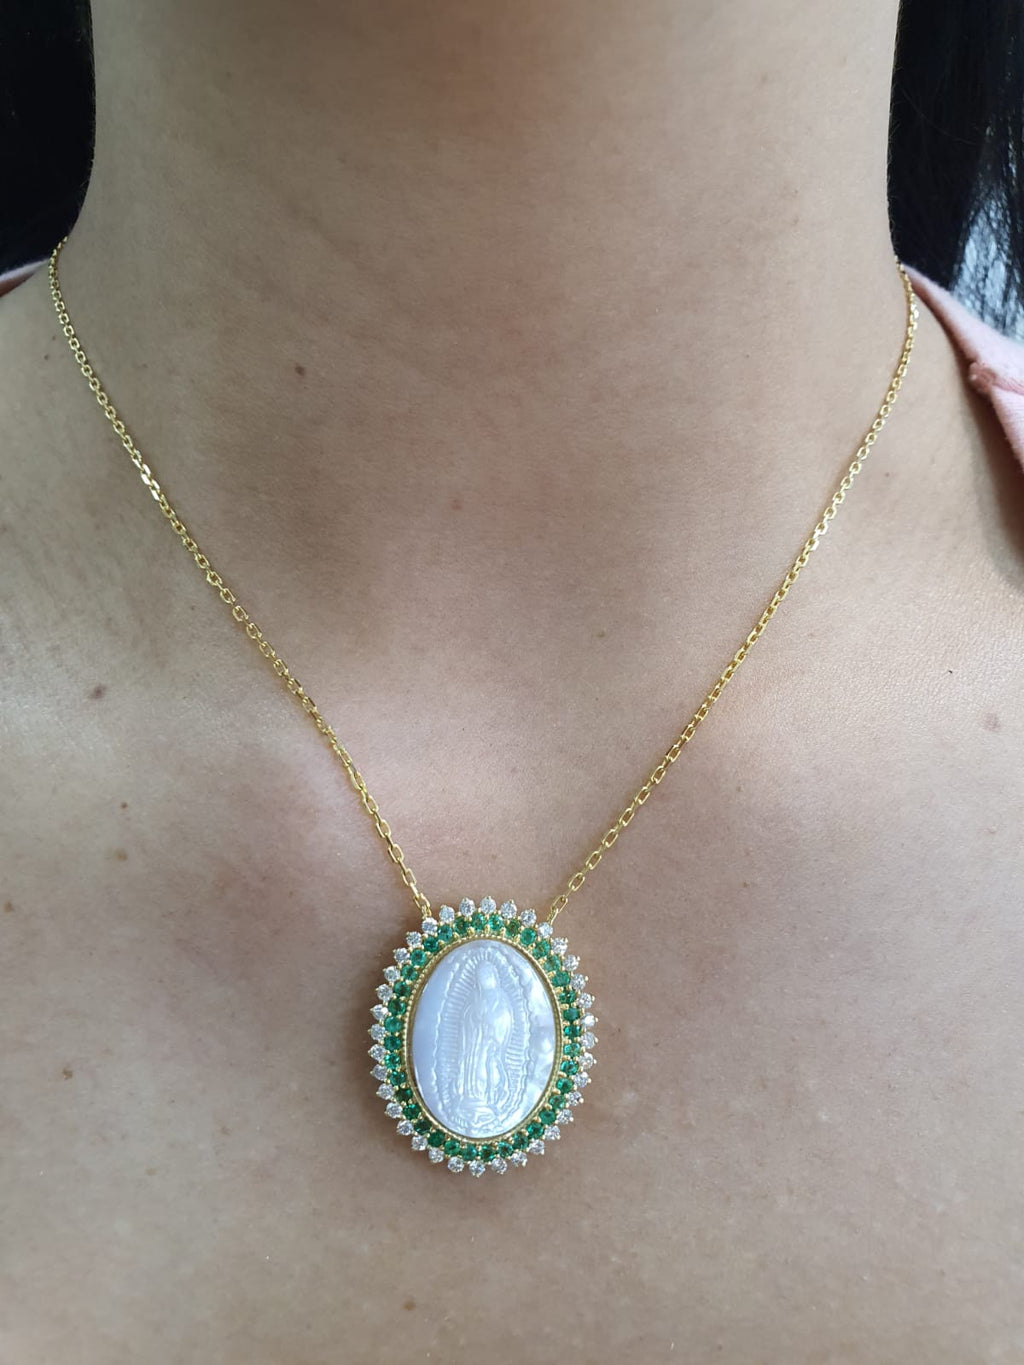 Mother of Pearl Guadalupe Medal Framed in Color Stone & Diamonds  Necklace  14K Gold